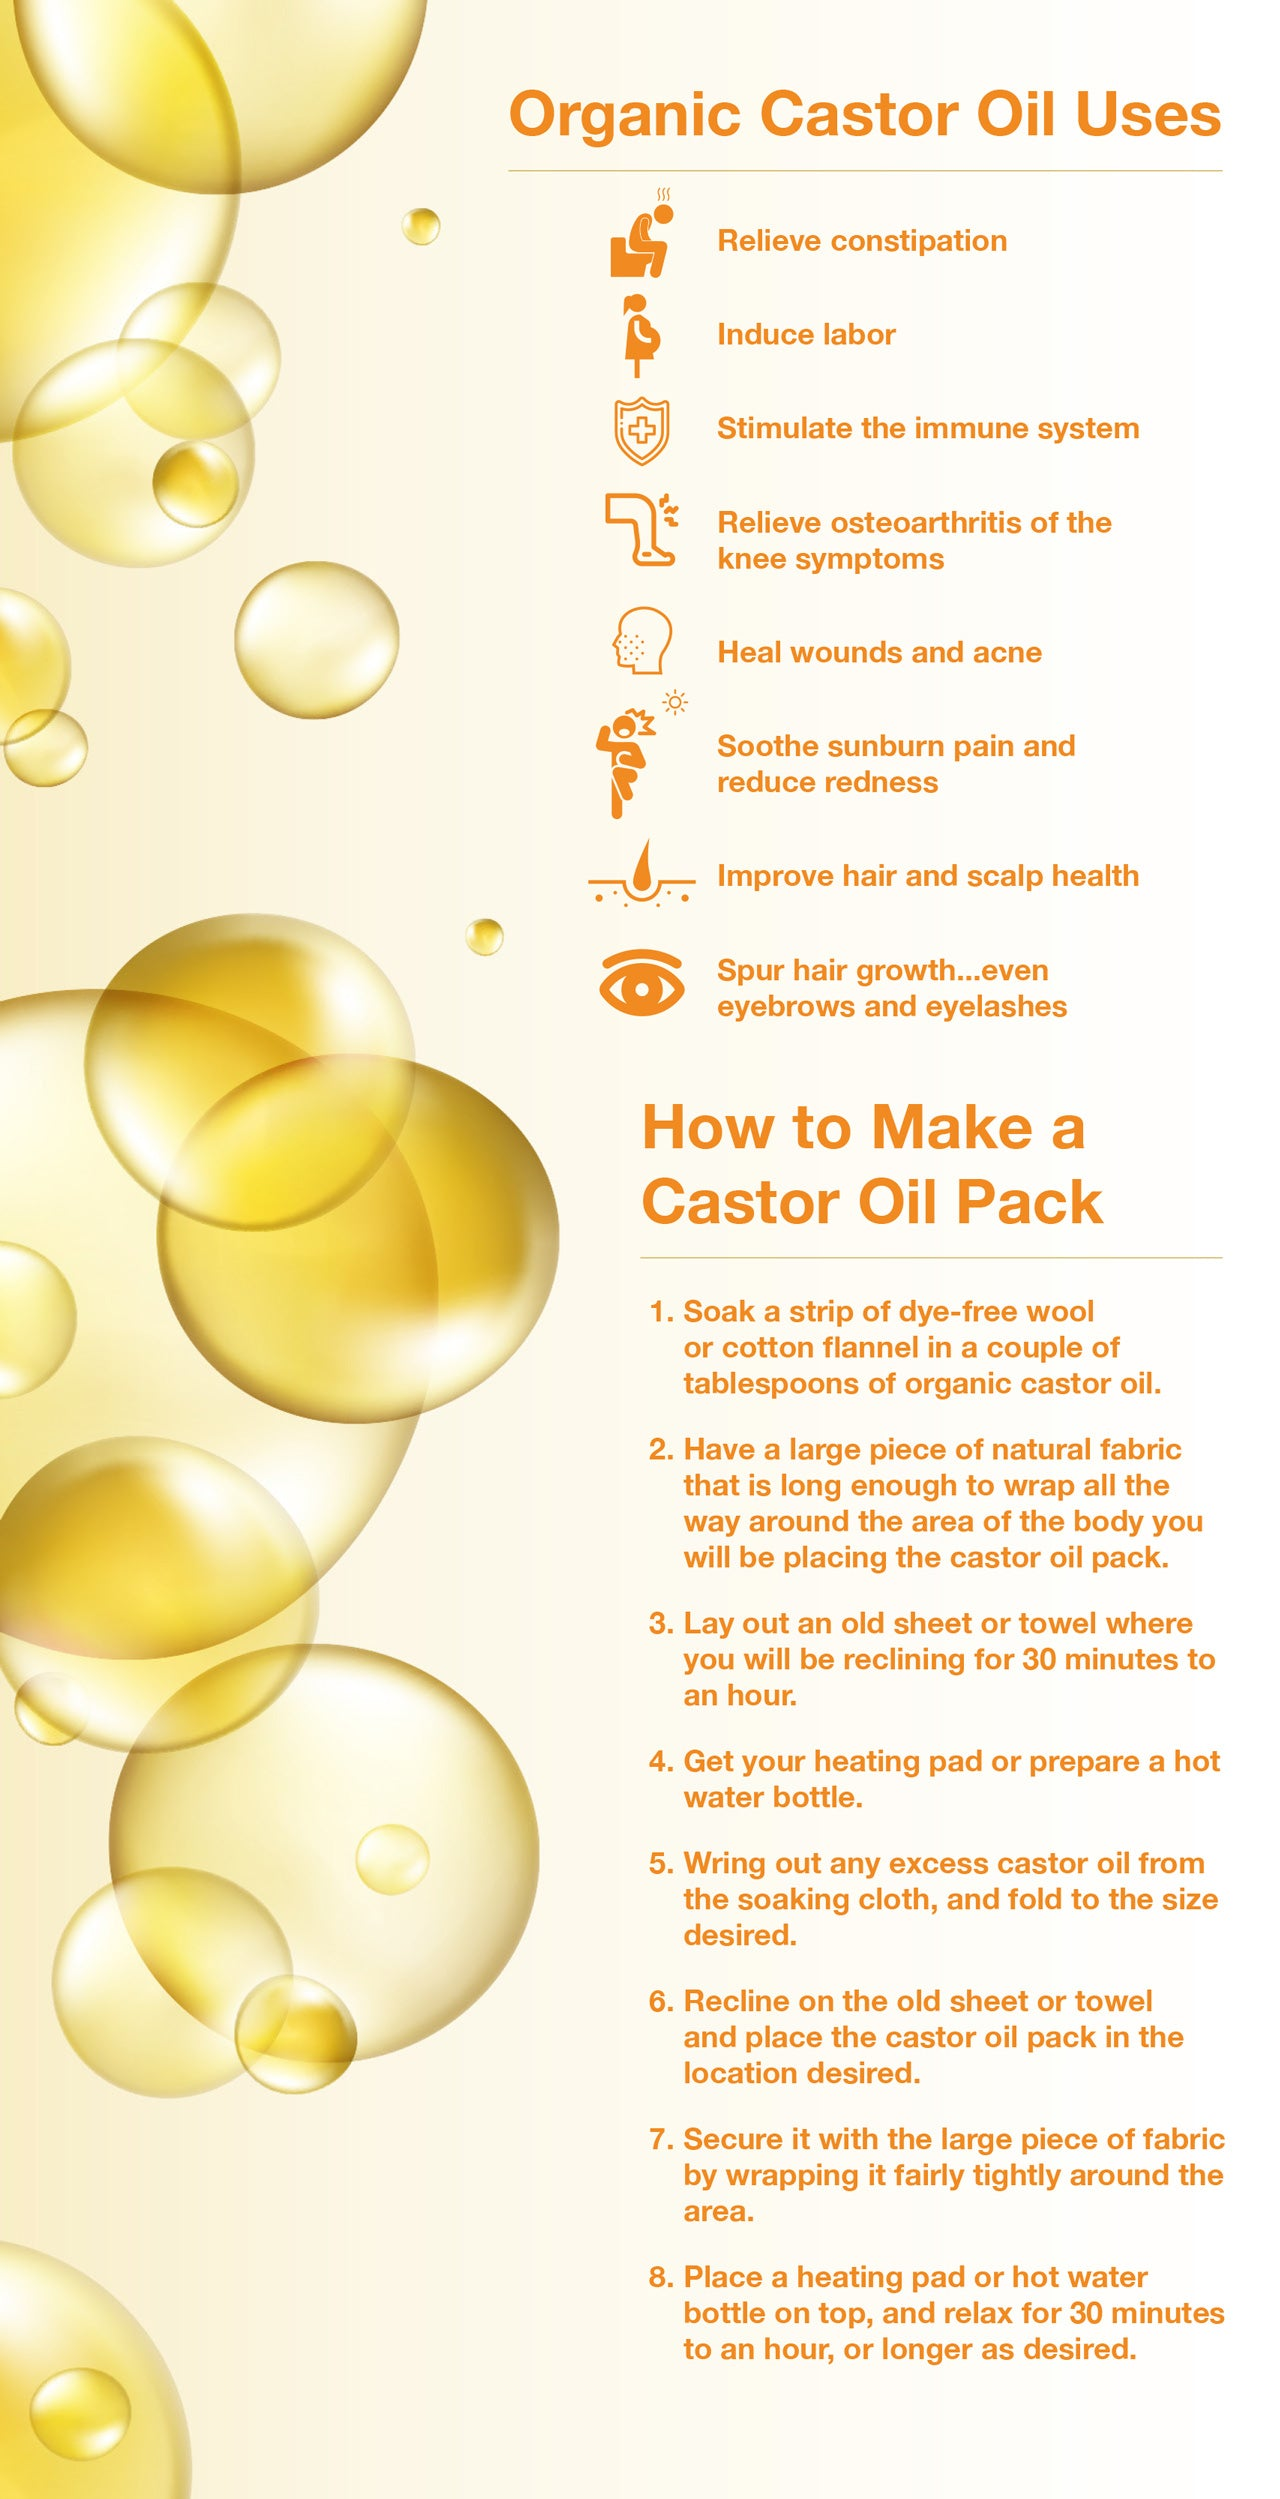 Organic Castor Oil Uses and How to Make a Castor Oil Pack.